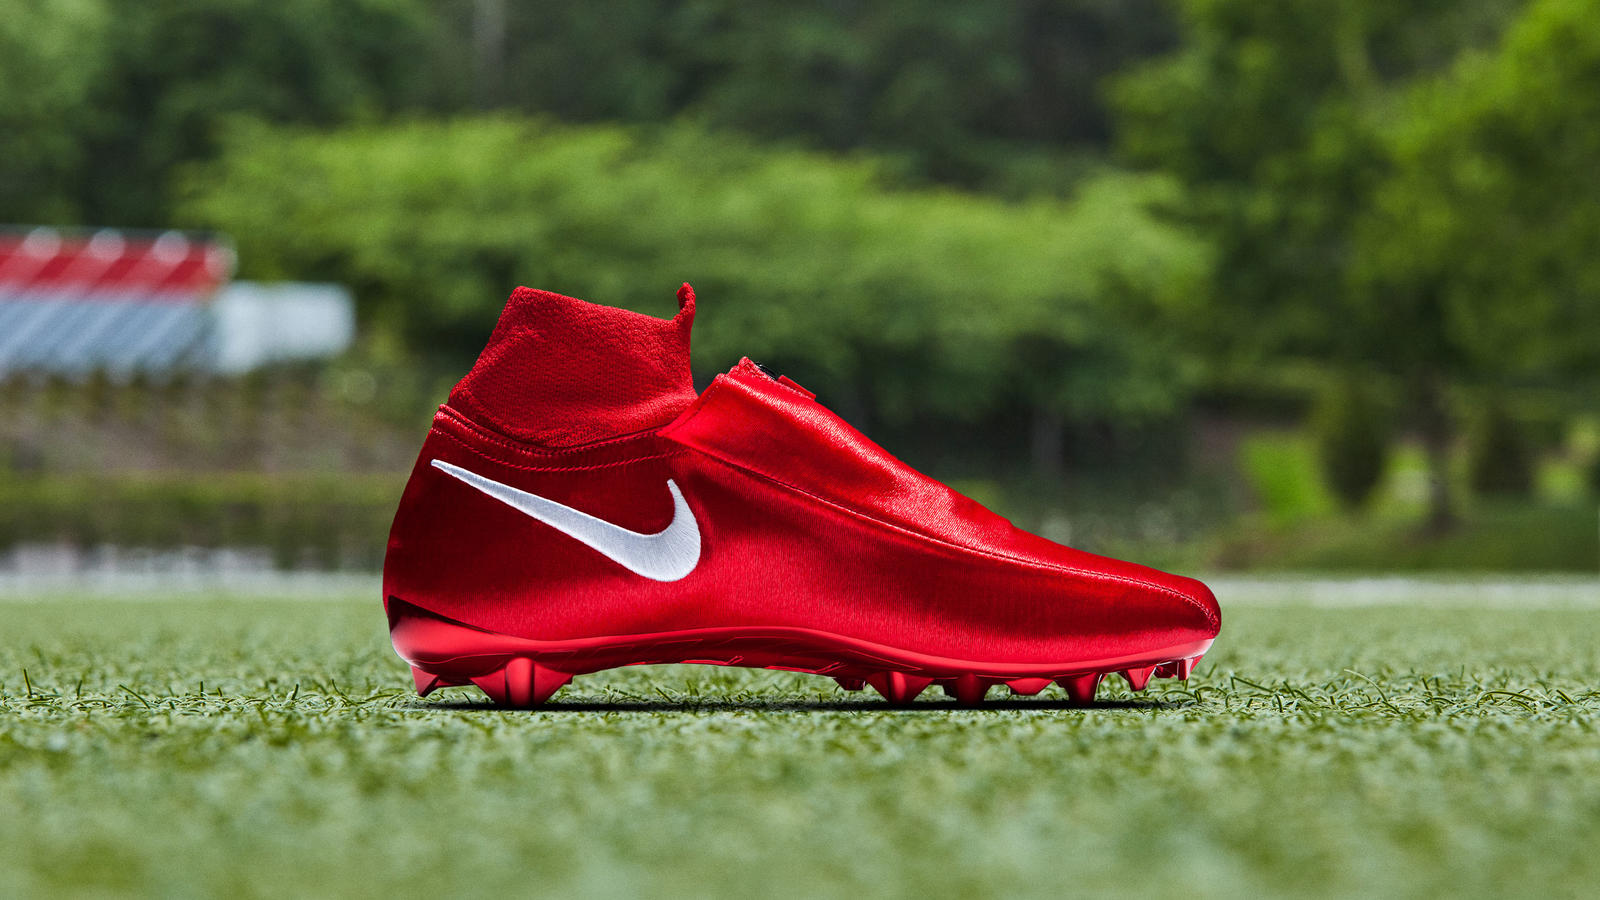 Nike Gold Cleat (Odell Beckham Jr. Special Edition) 1